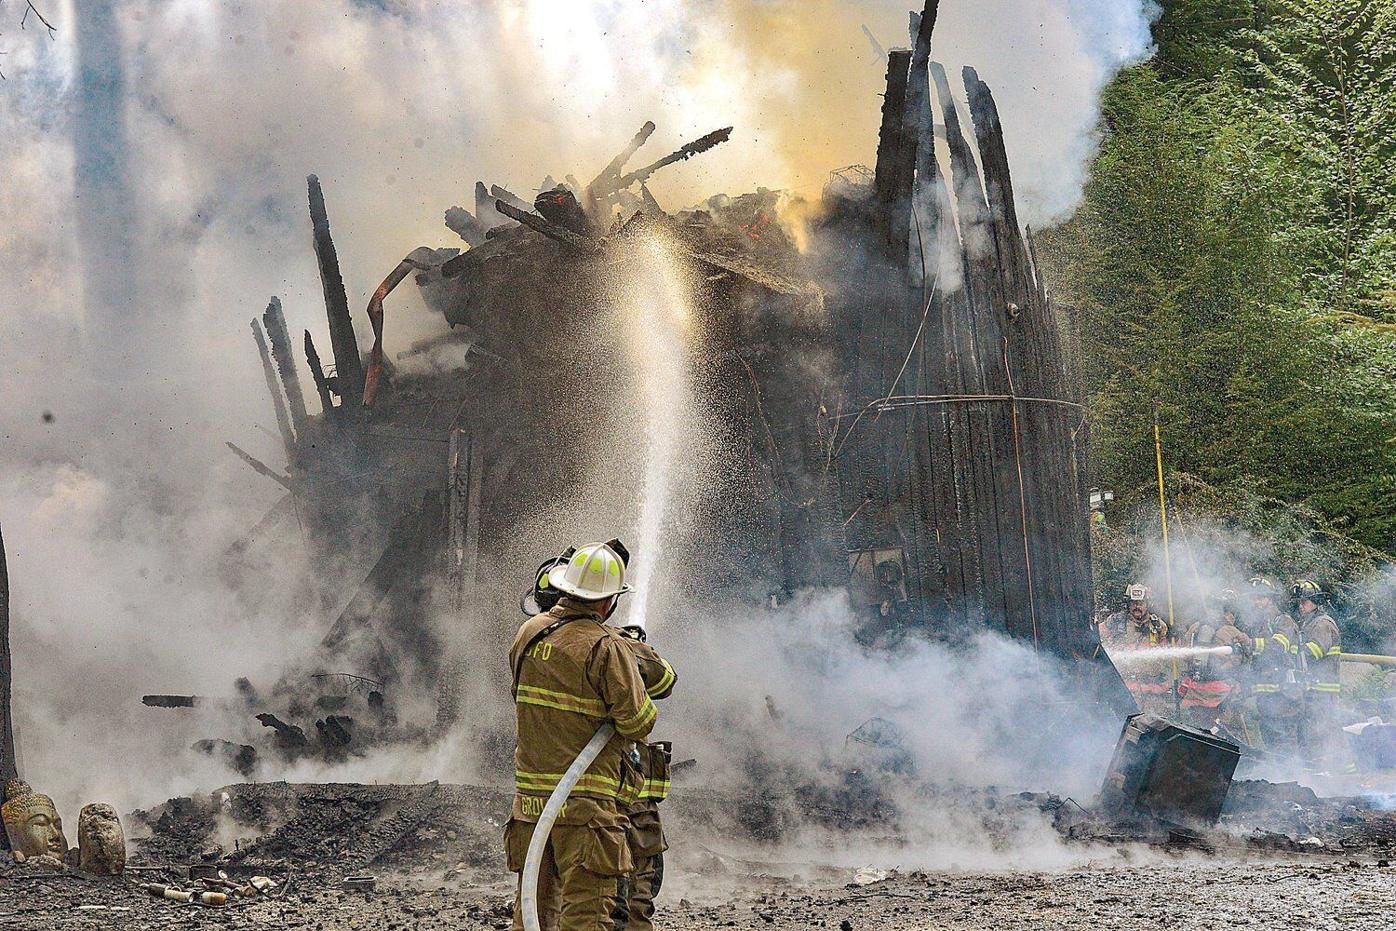 Injuries reported in silo fire